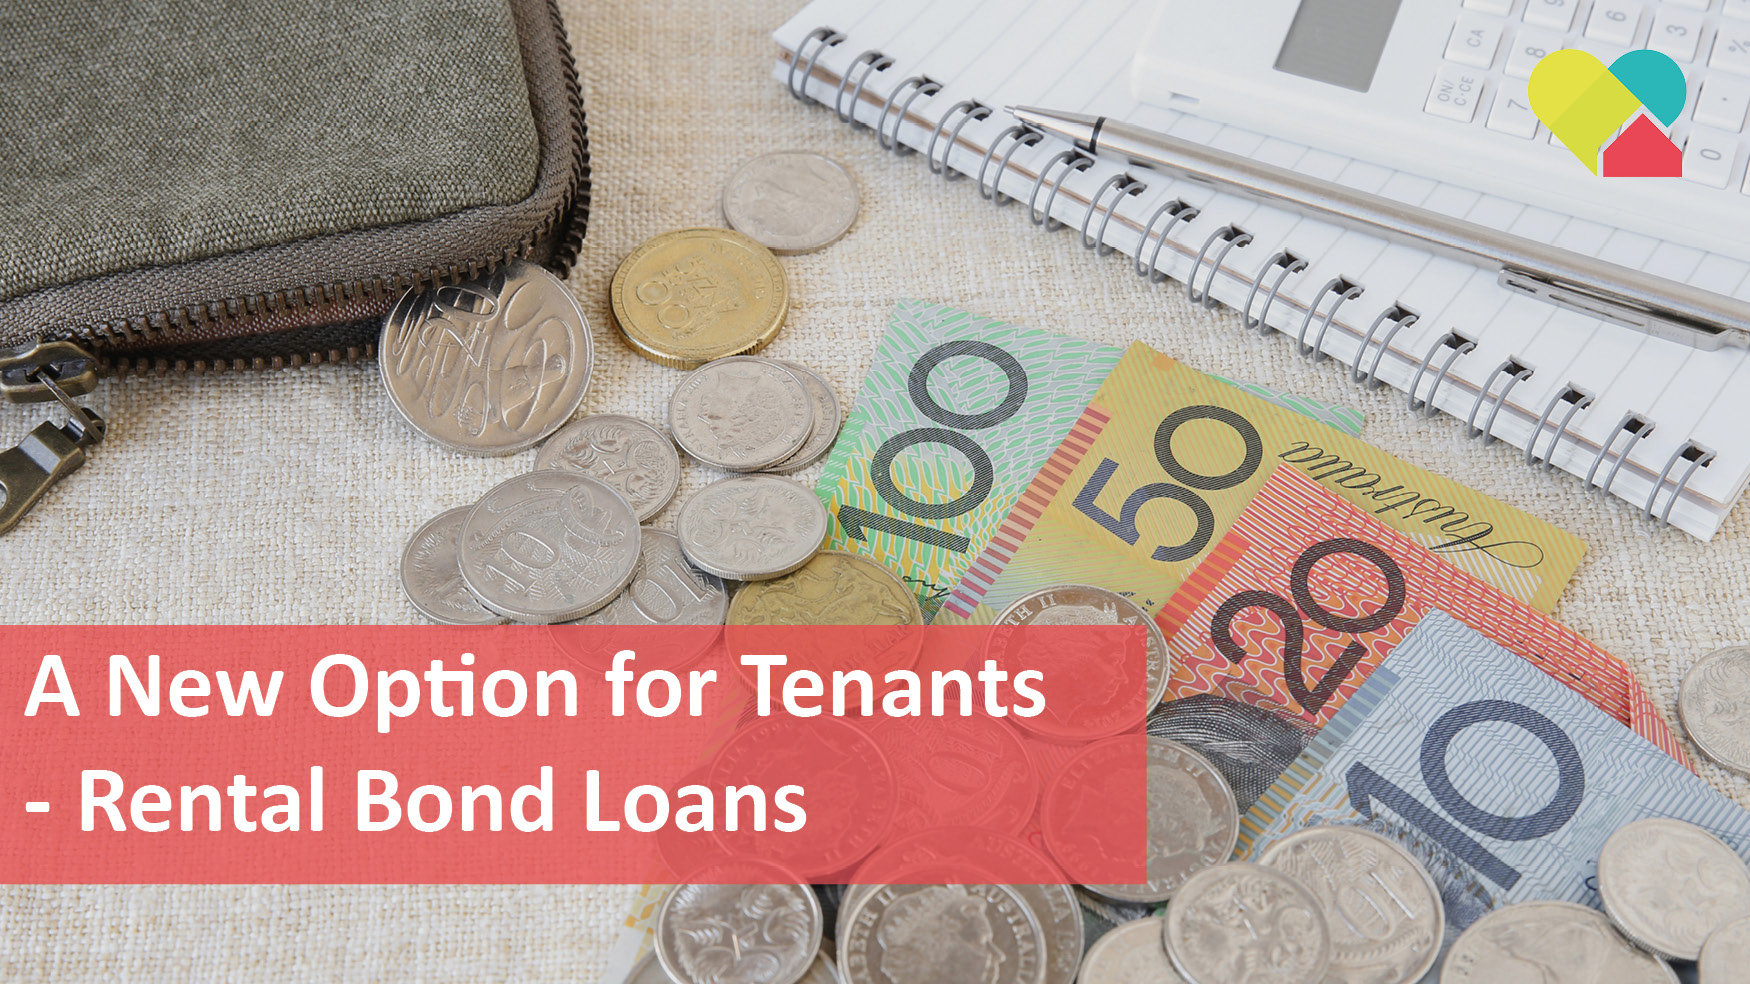 We Love Rentals rental bond loans and insurance